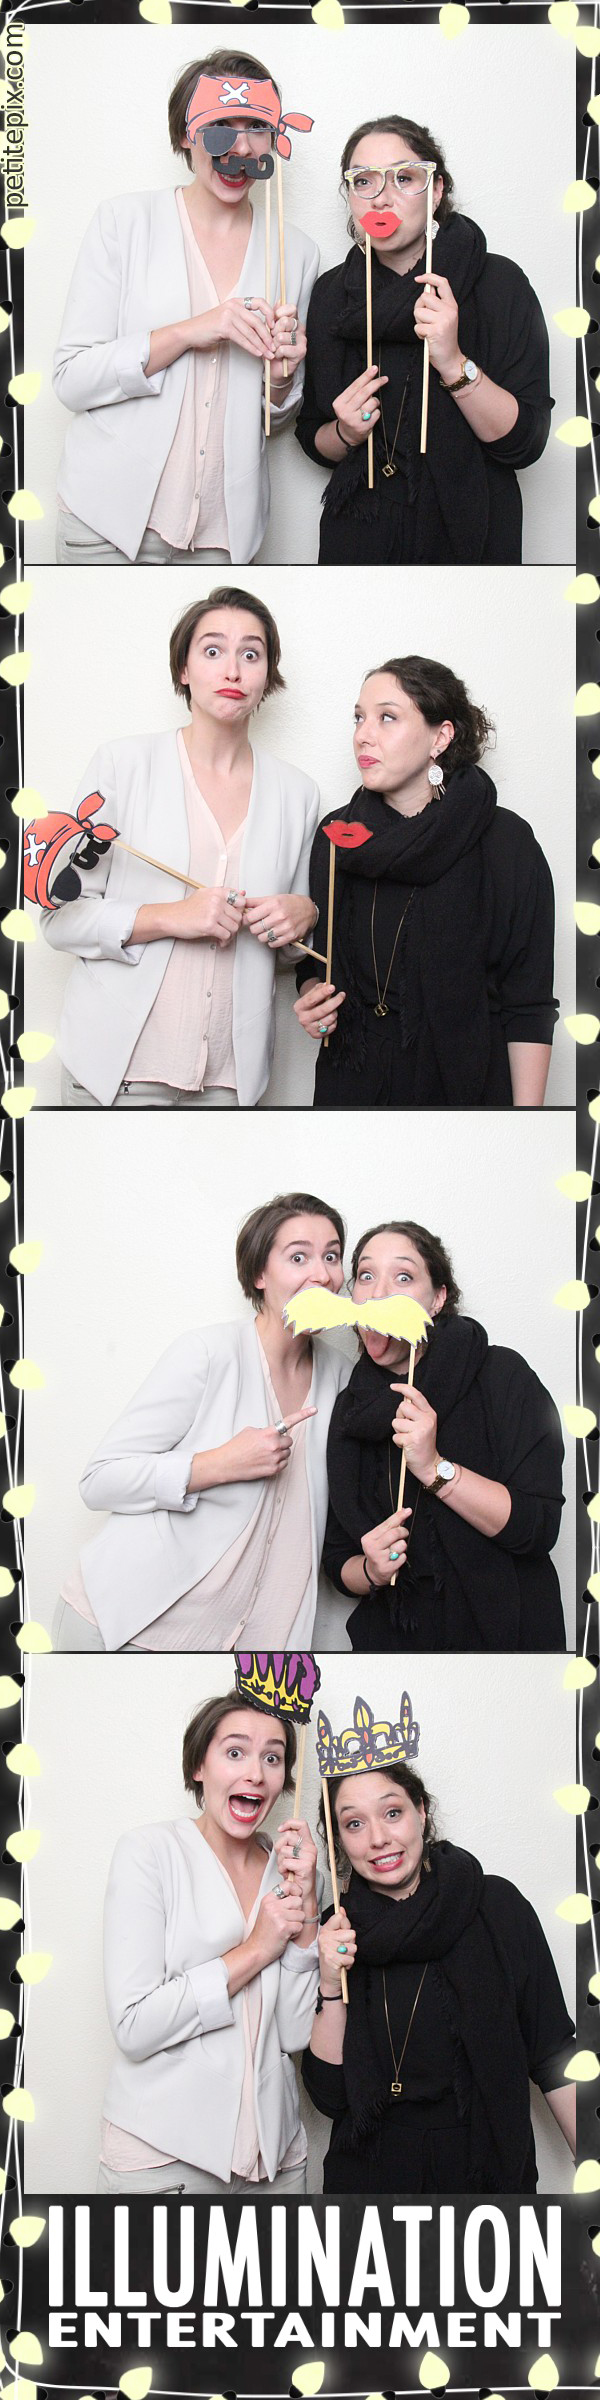 Illumination Entertainment Holiday Party Petite Pix A